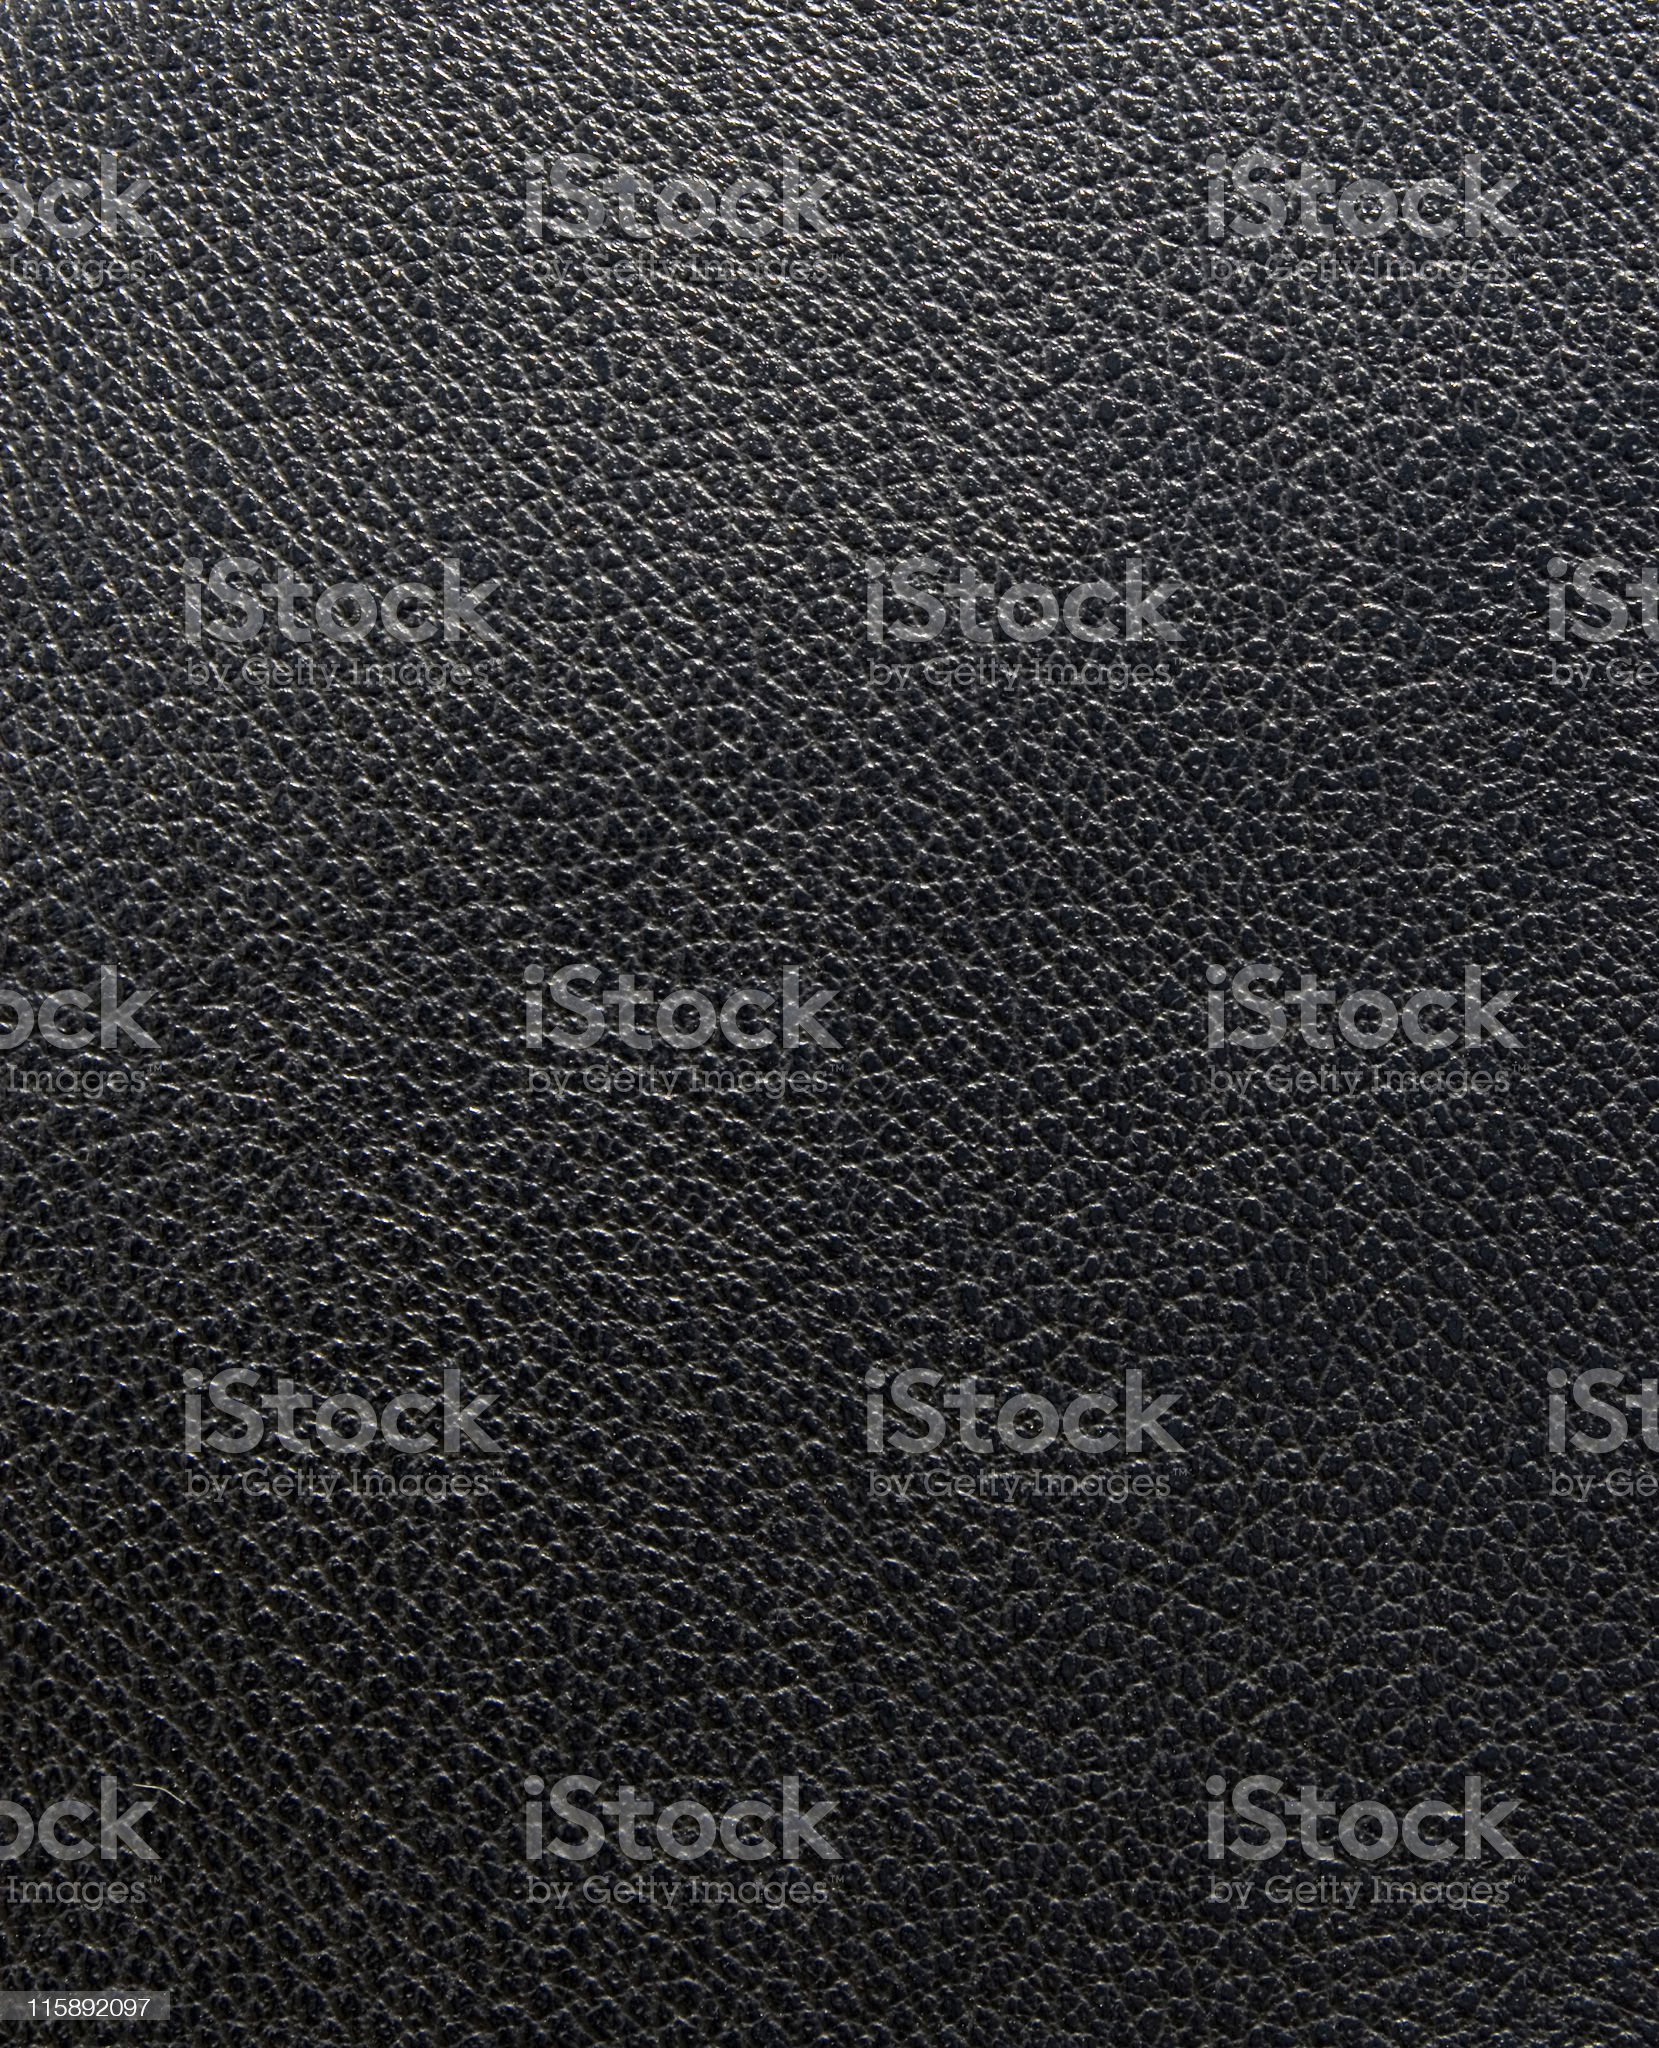 Black Leather Texture royalty-free stock photo